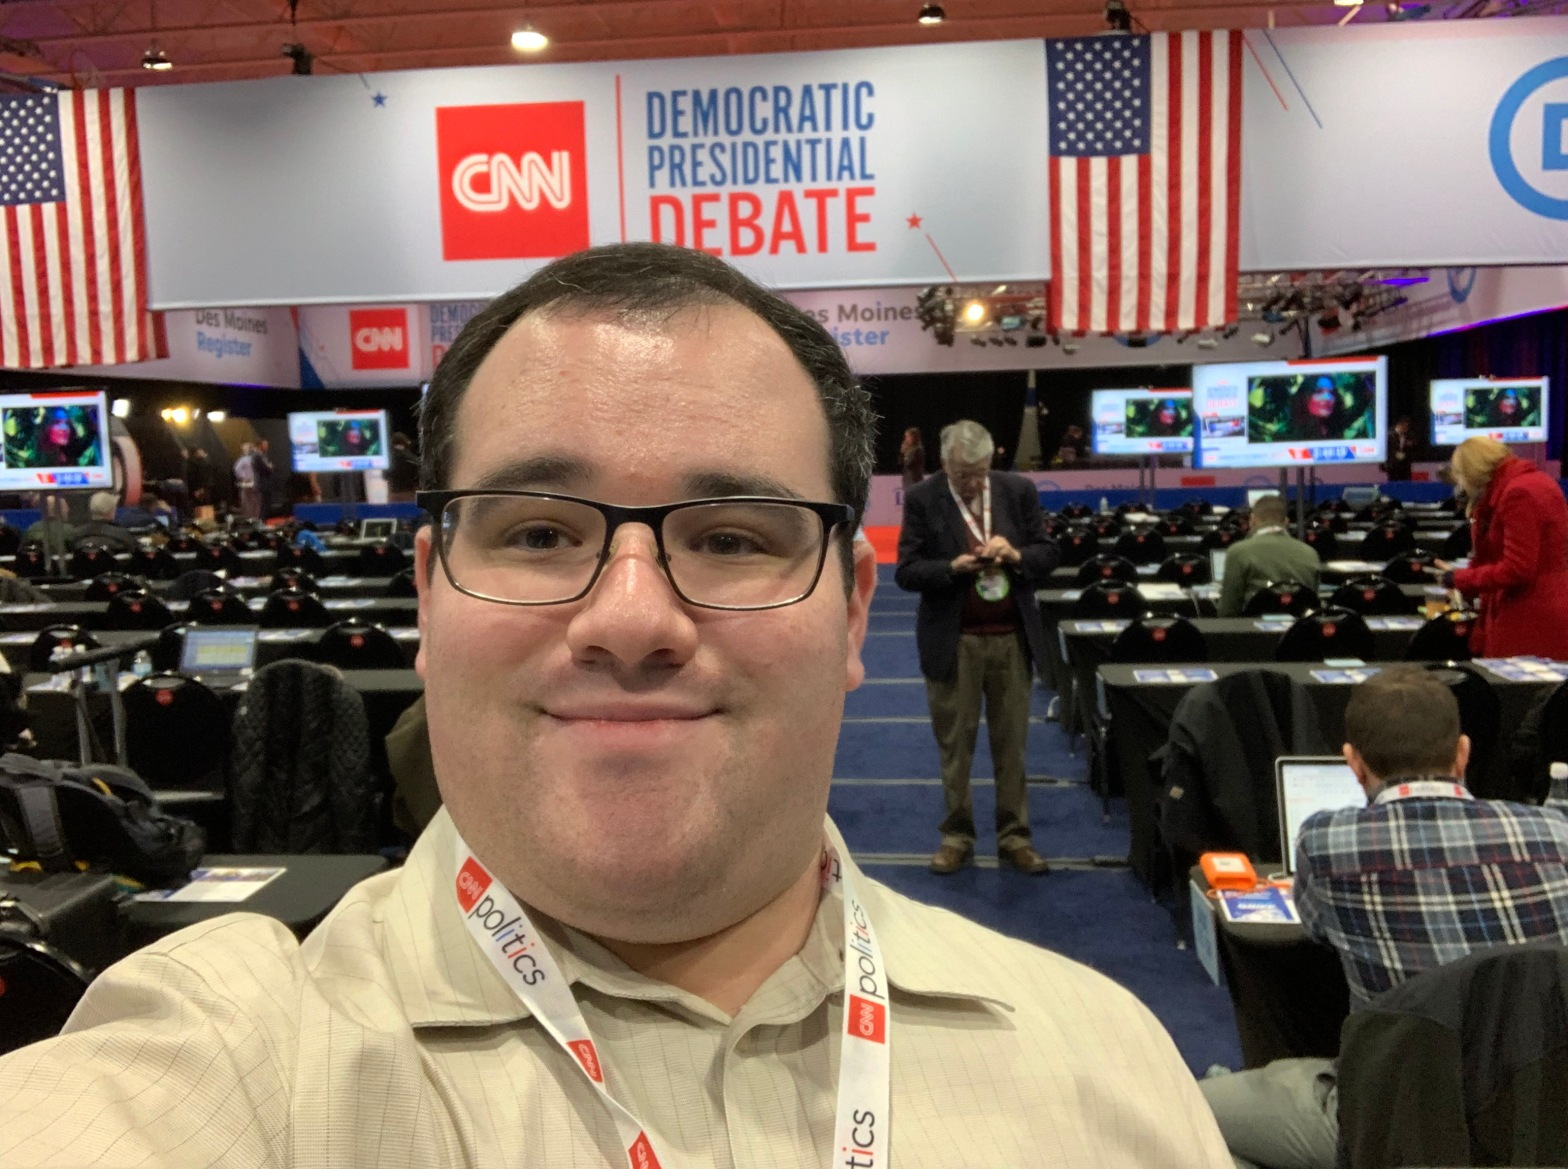 selfie of Eric Ascher at the CNN Democratic Debate spin room